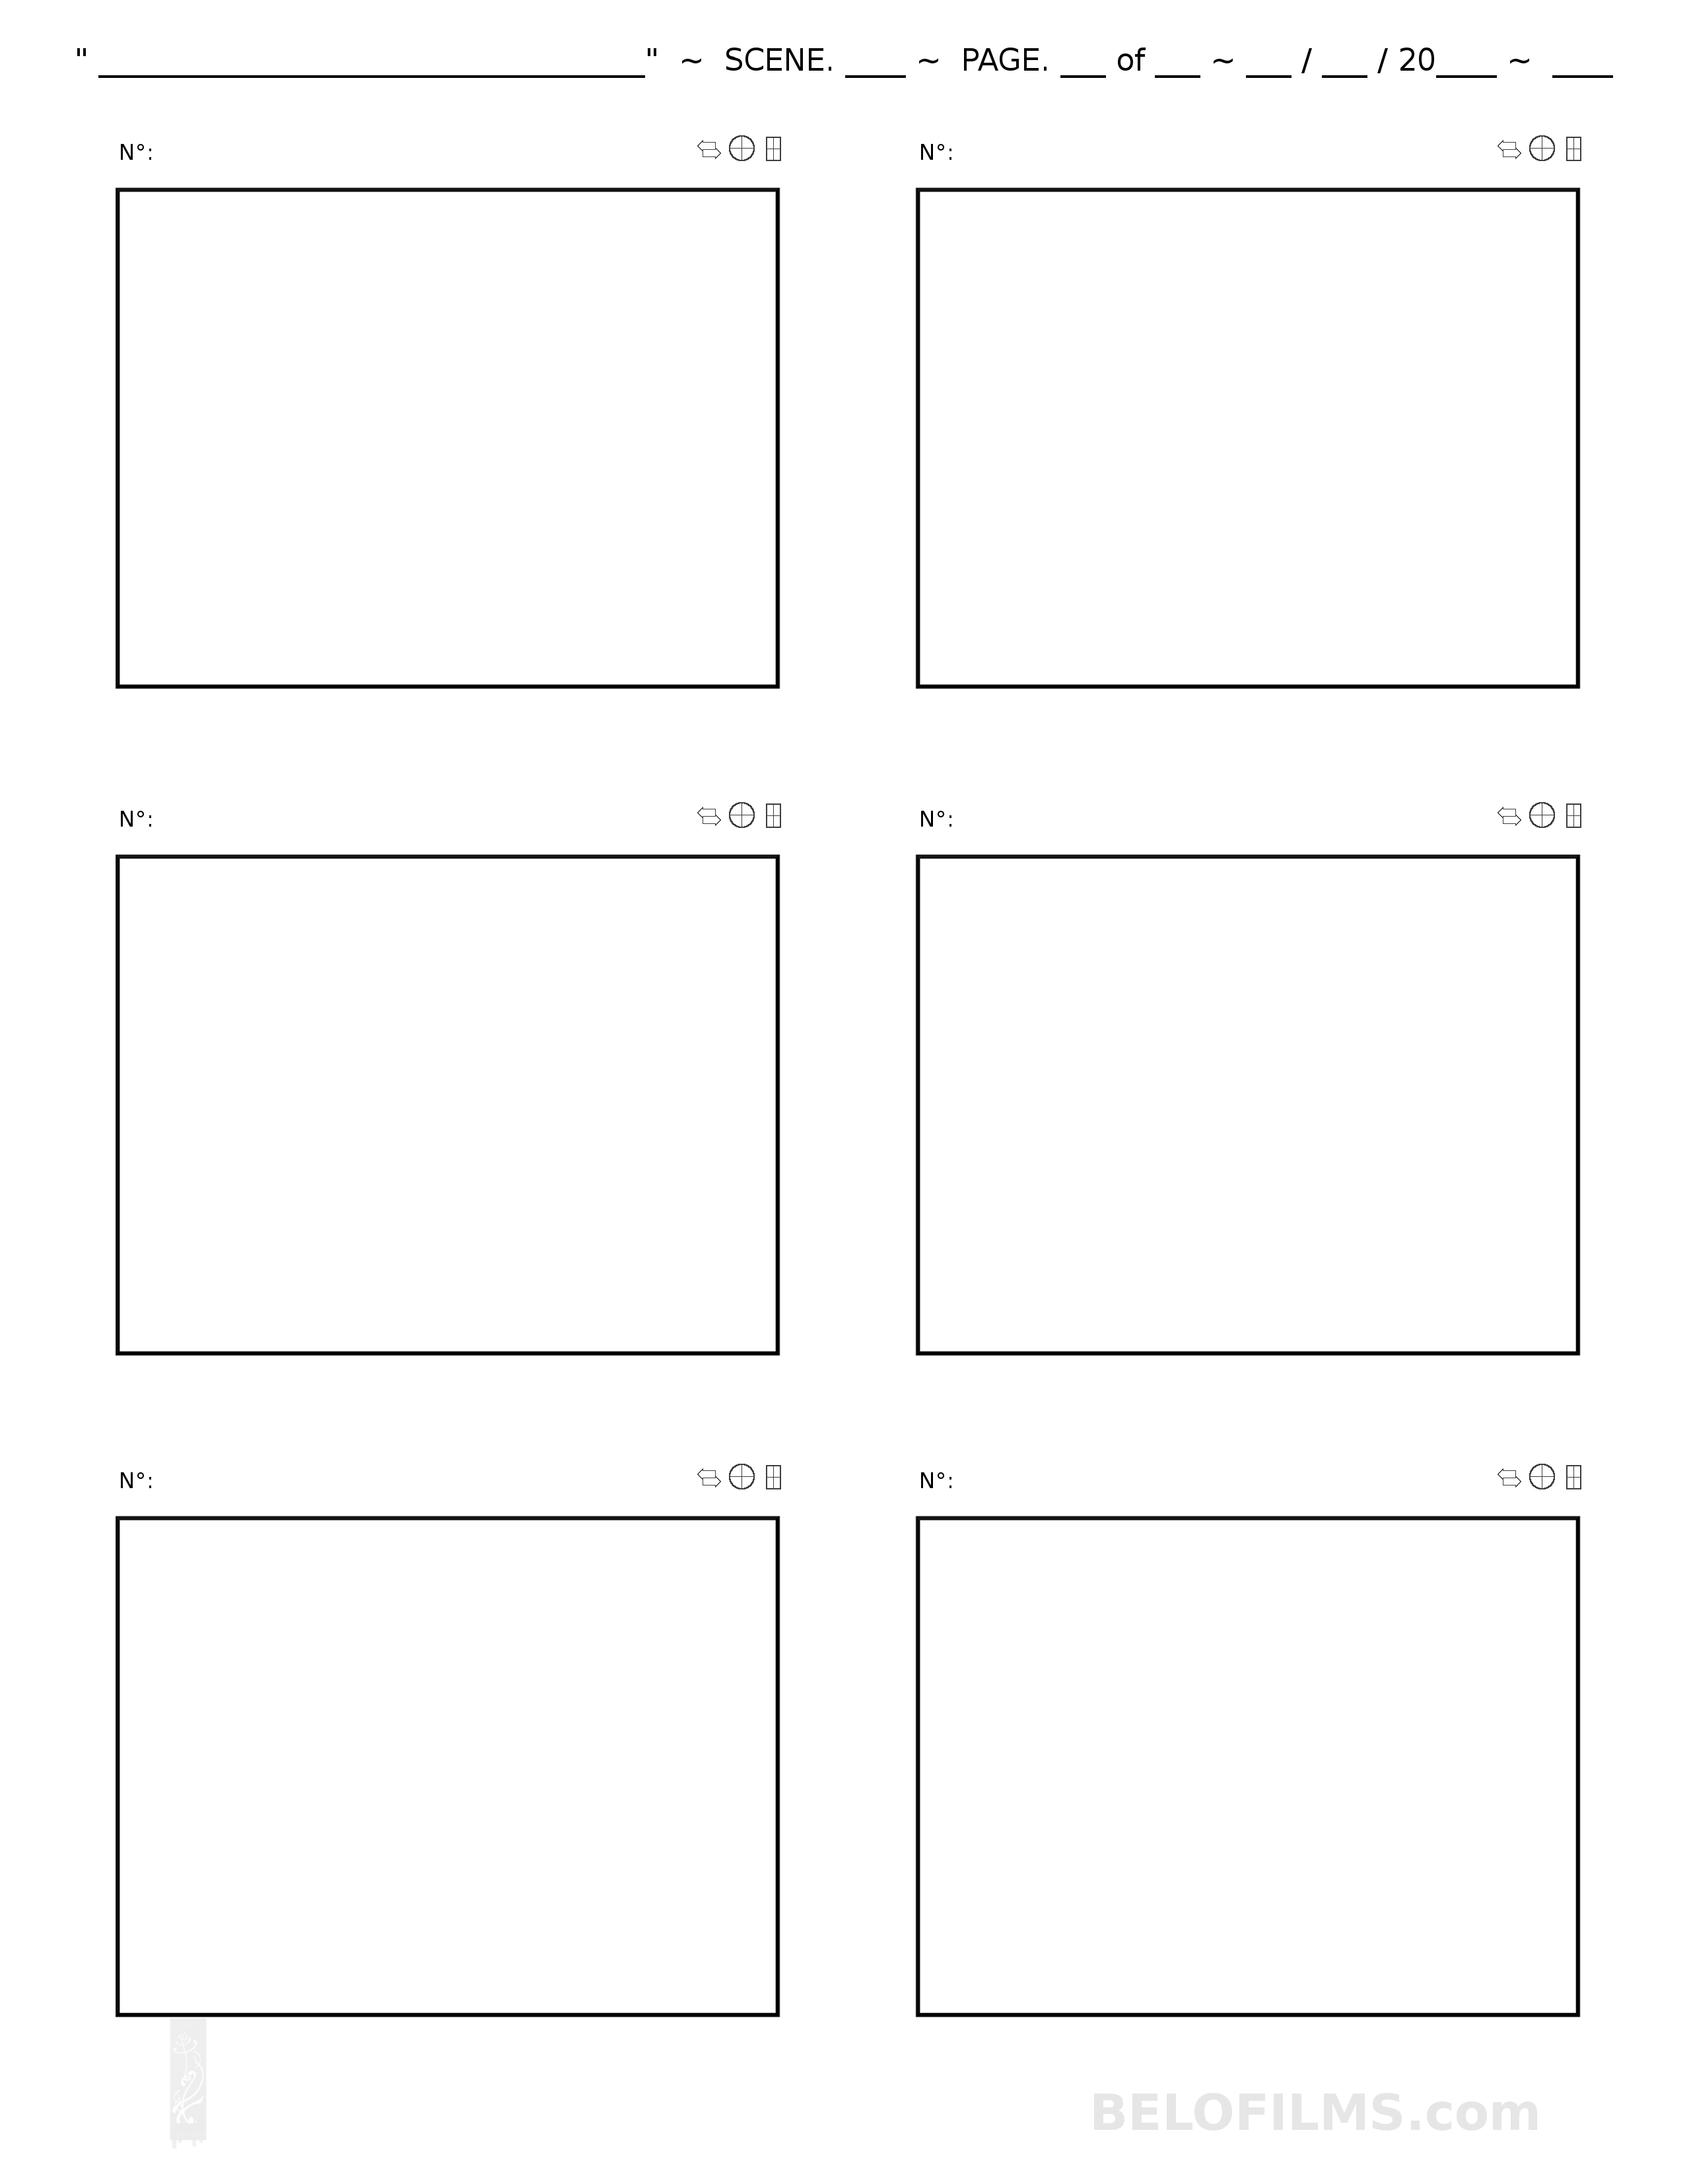 Storyboard And Animatic Templates Belofilms Elulu